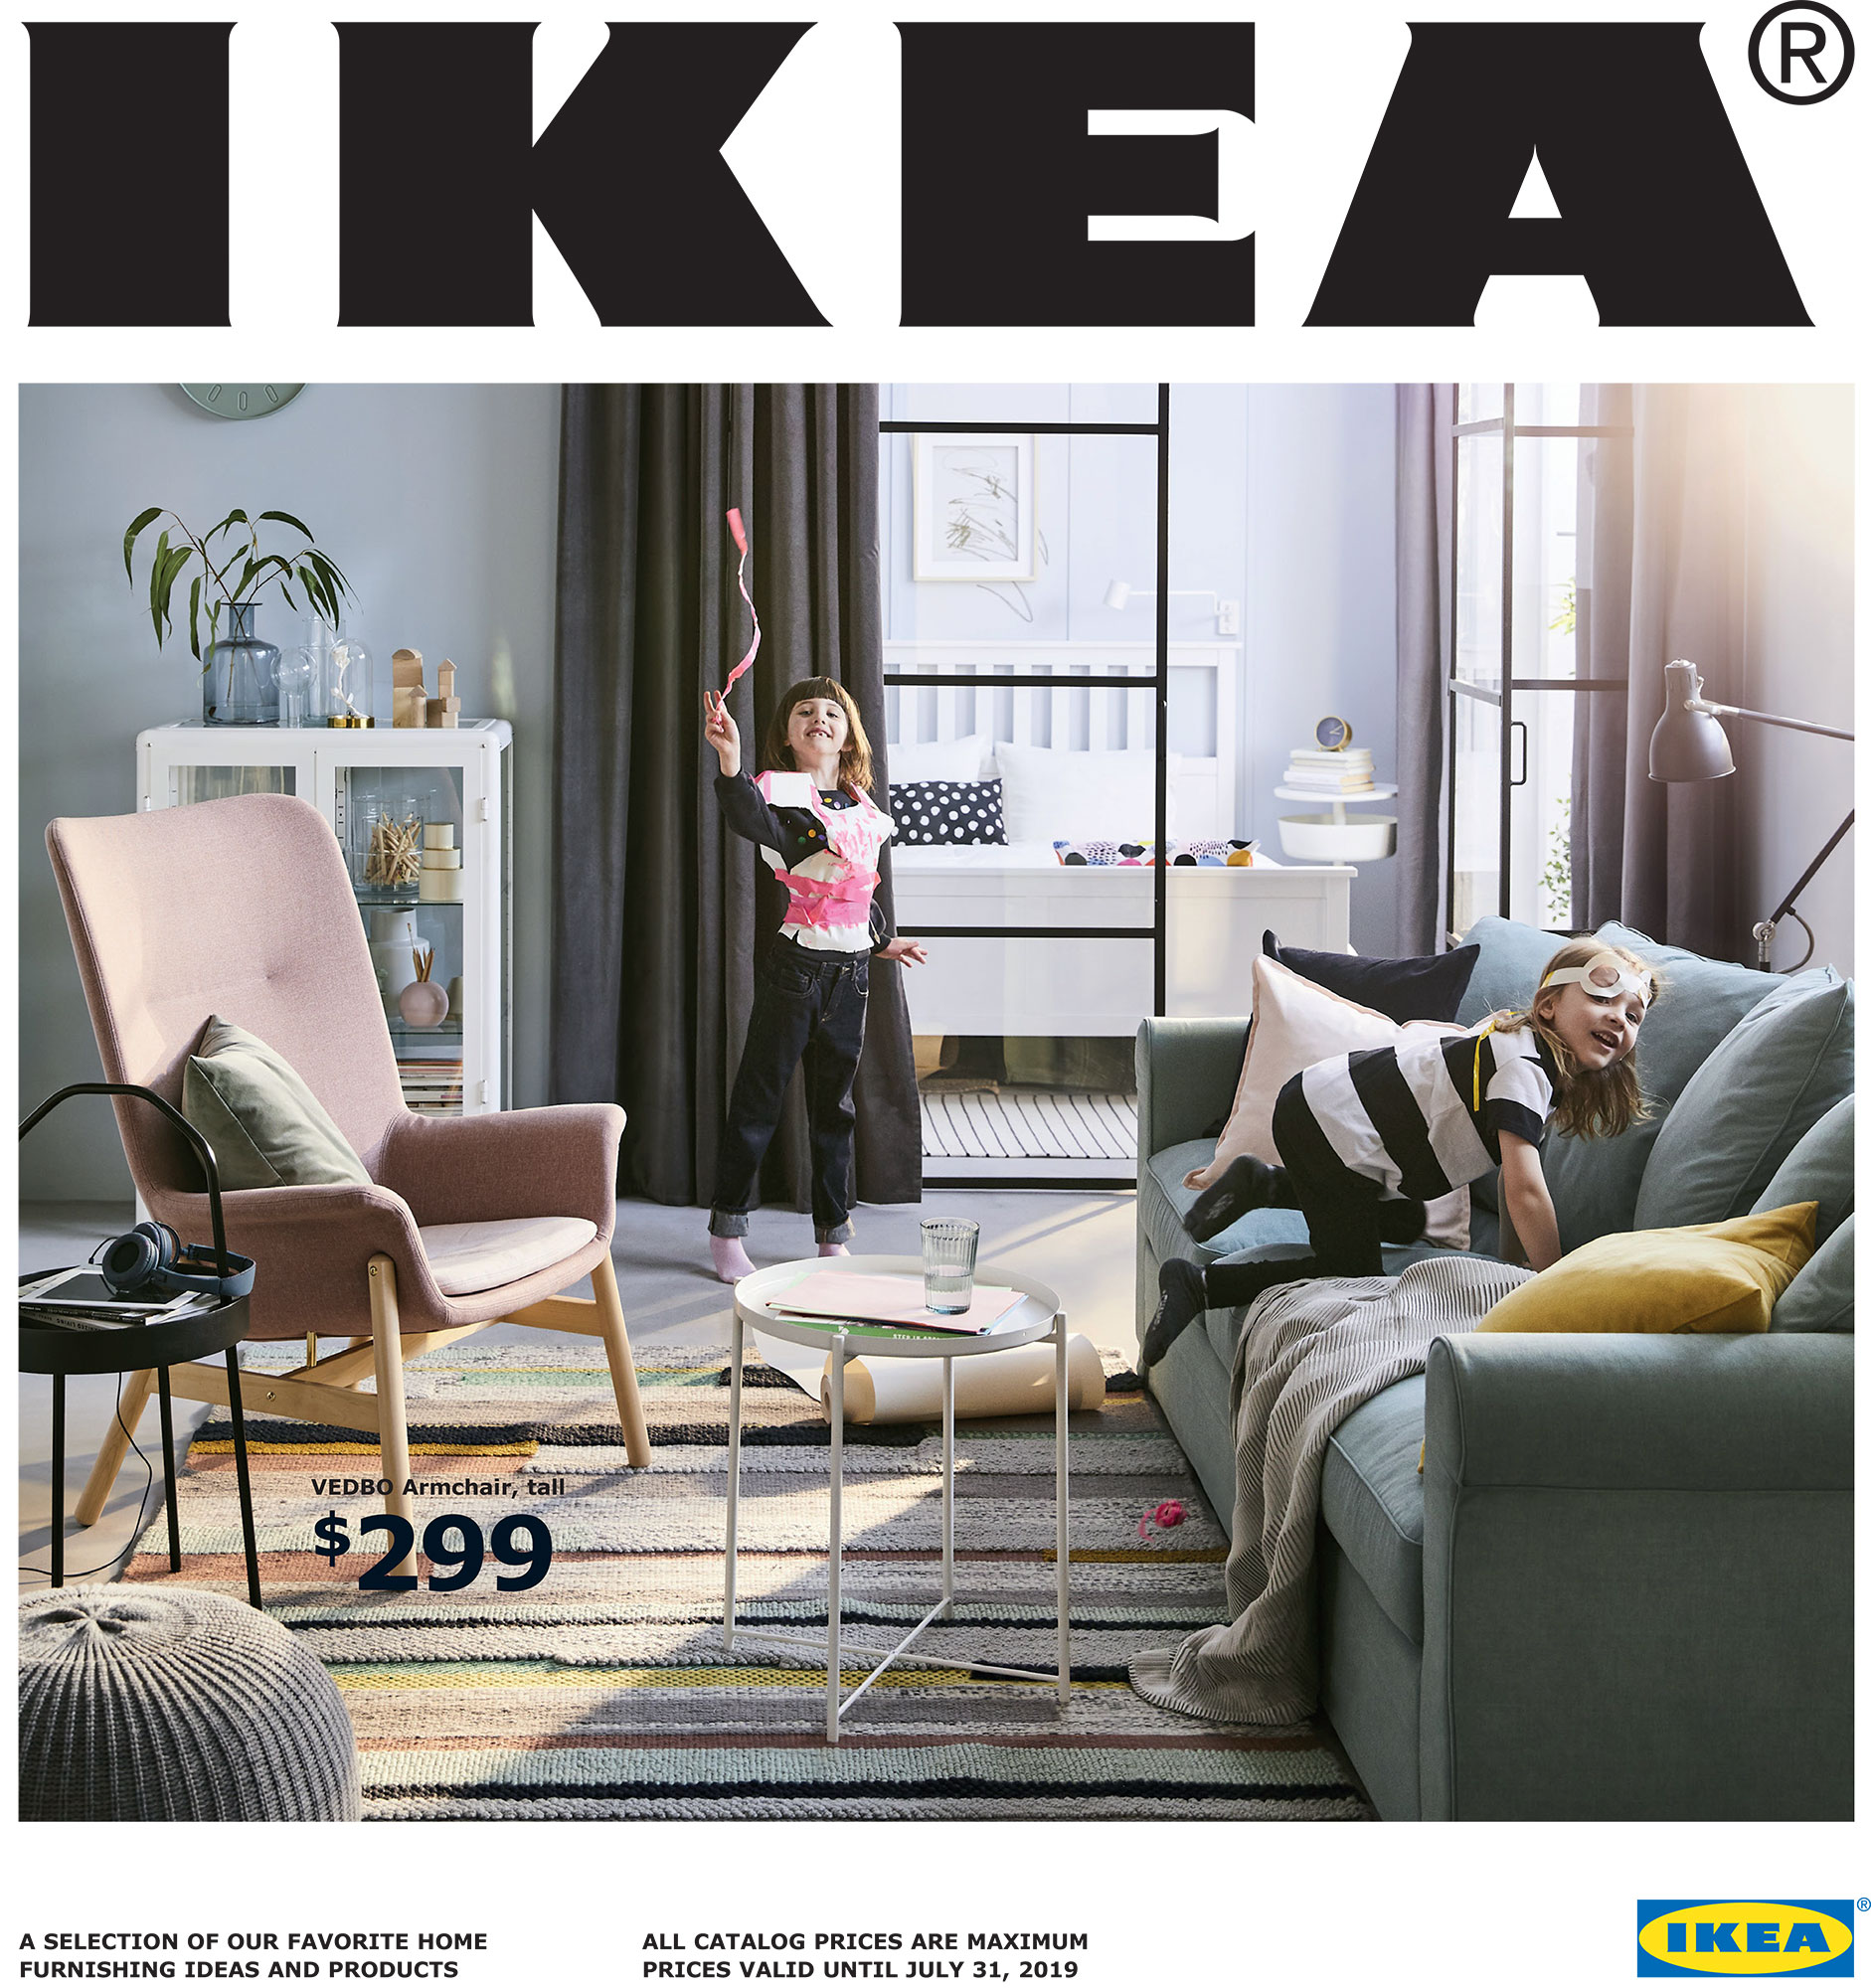 de ikea catalogus van 2019 complete woonconcepten. Black Bedroom Furniture Sets. Home Design Ideas